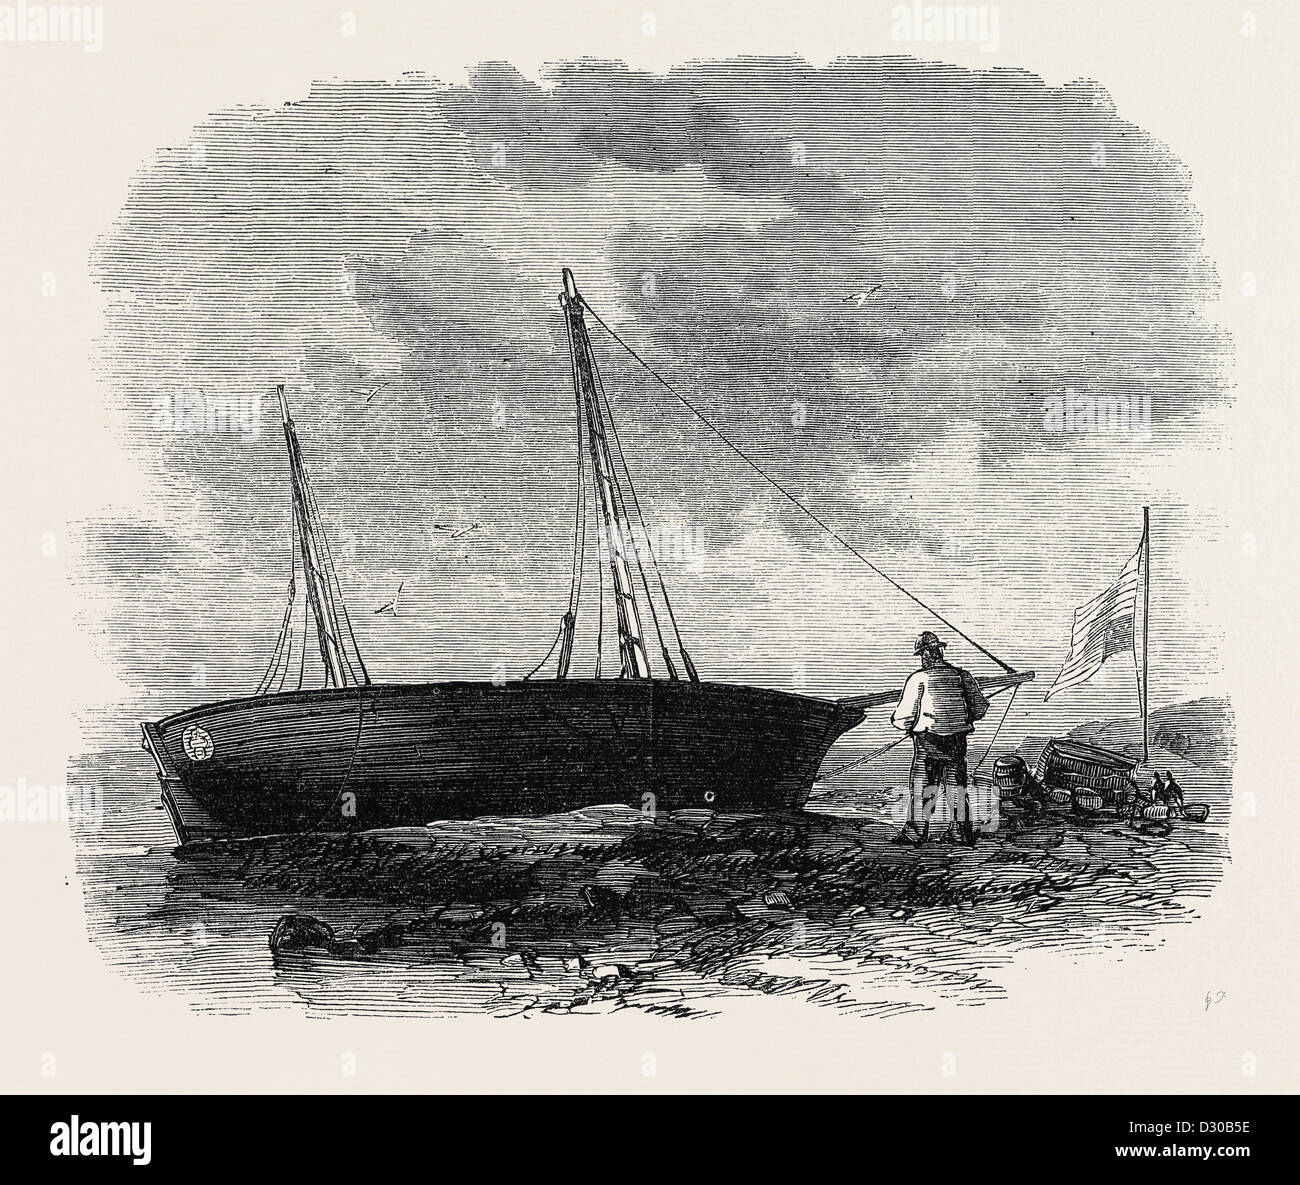 THE BOAT 'JOHN T. FORD' WHICH CROSSED THE ATLANTIC 1867 - Stock Image